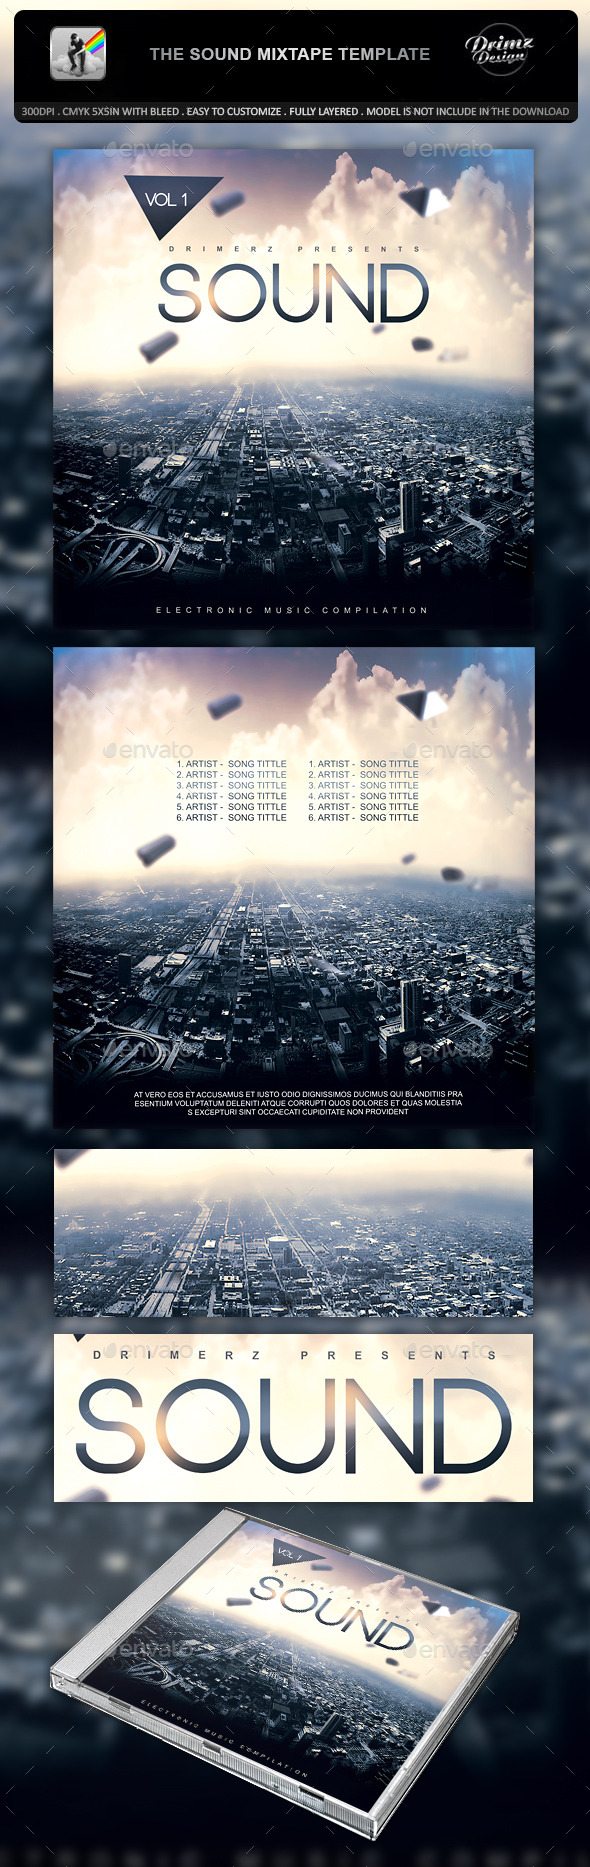 GraphicRiver The Sound Mixtape Template 10663979